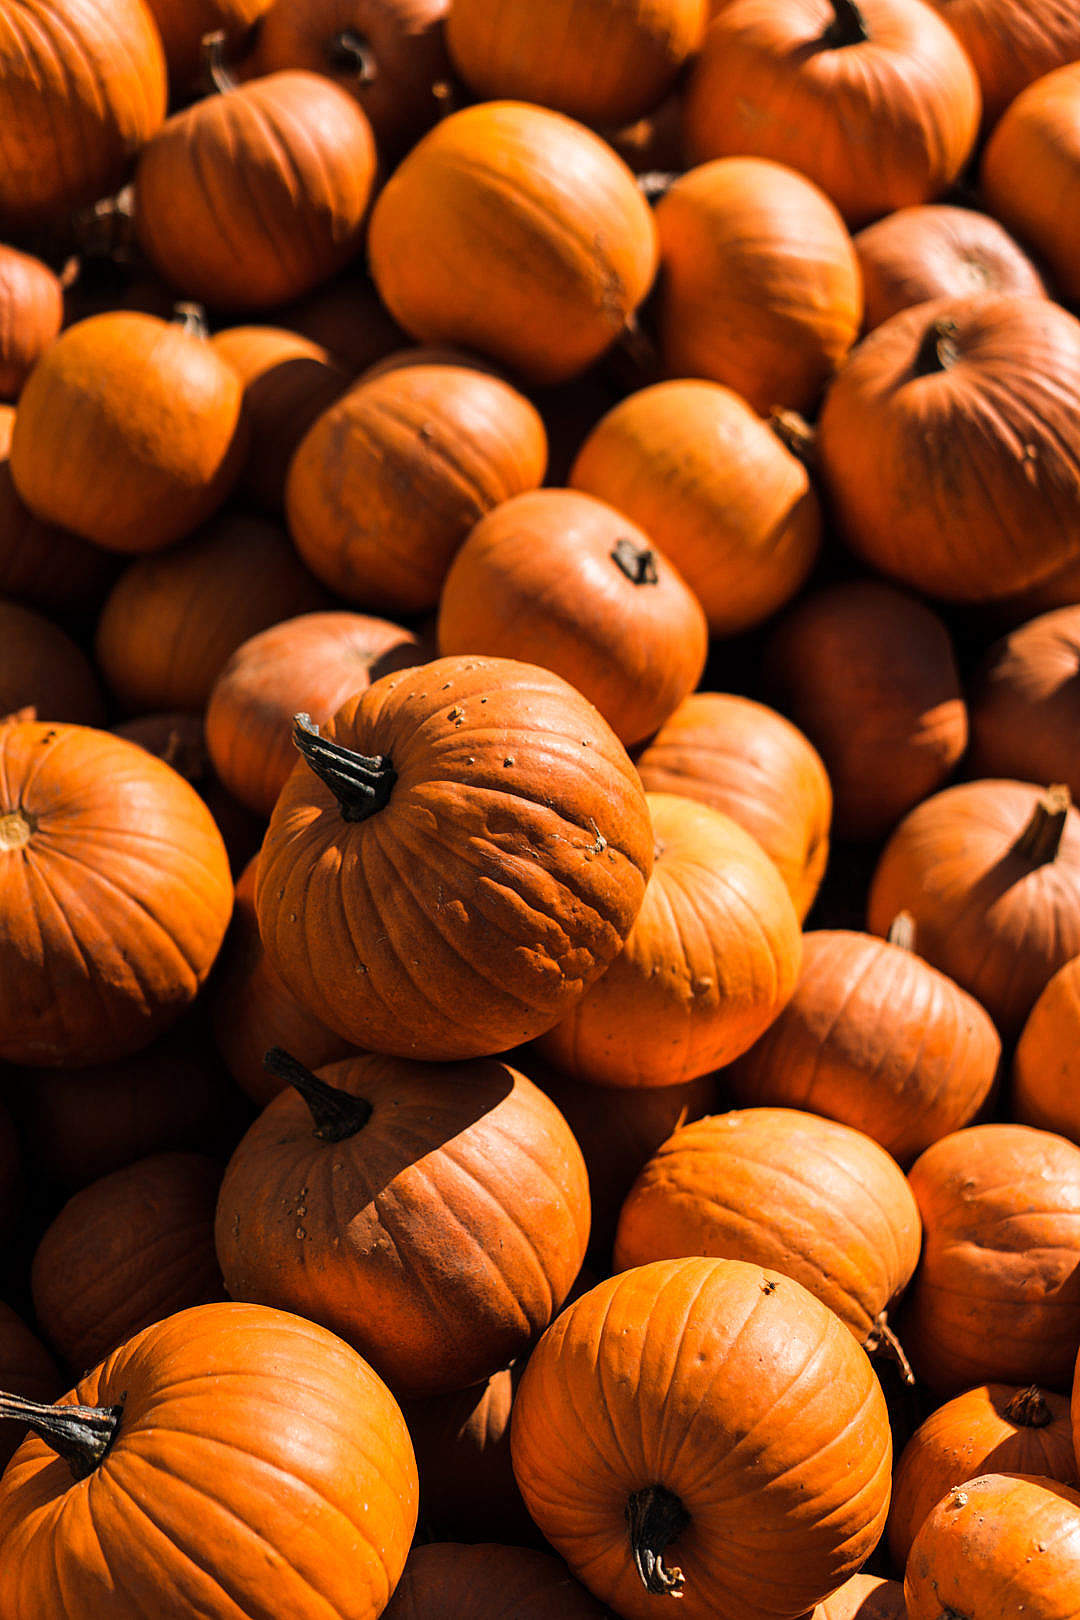 Download Pile of Pumpkins Vertical FREE Stock Photo